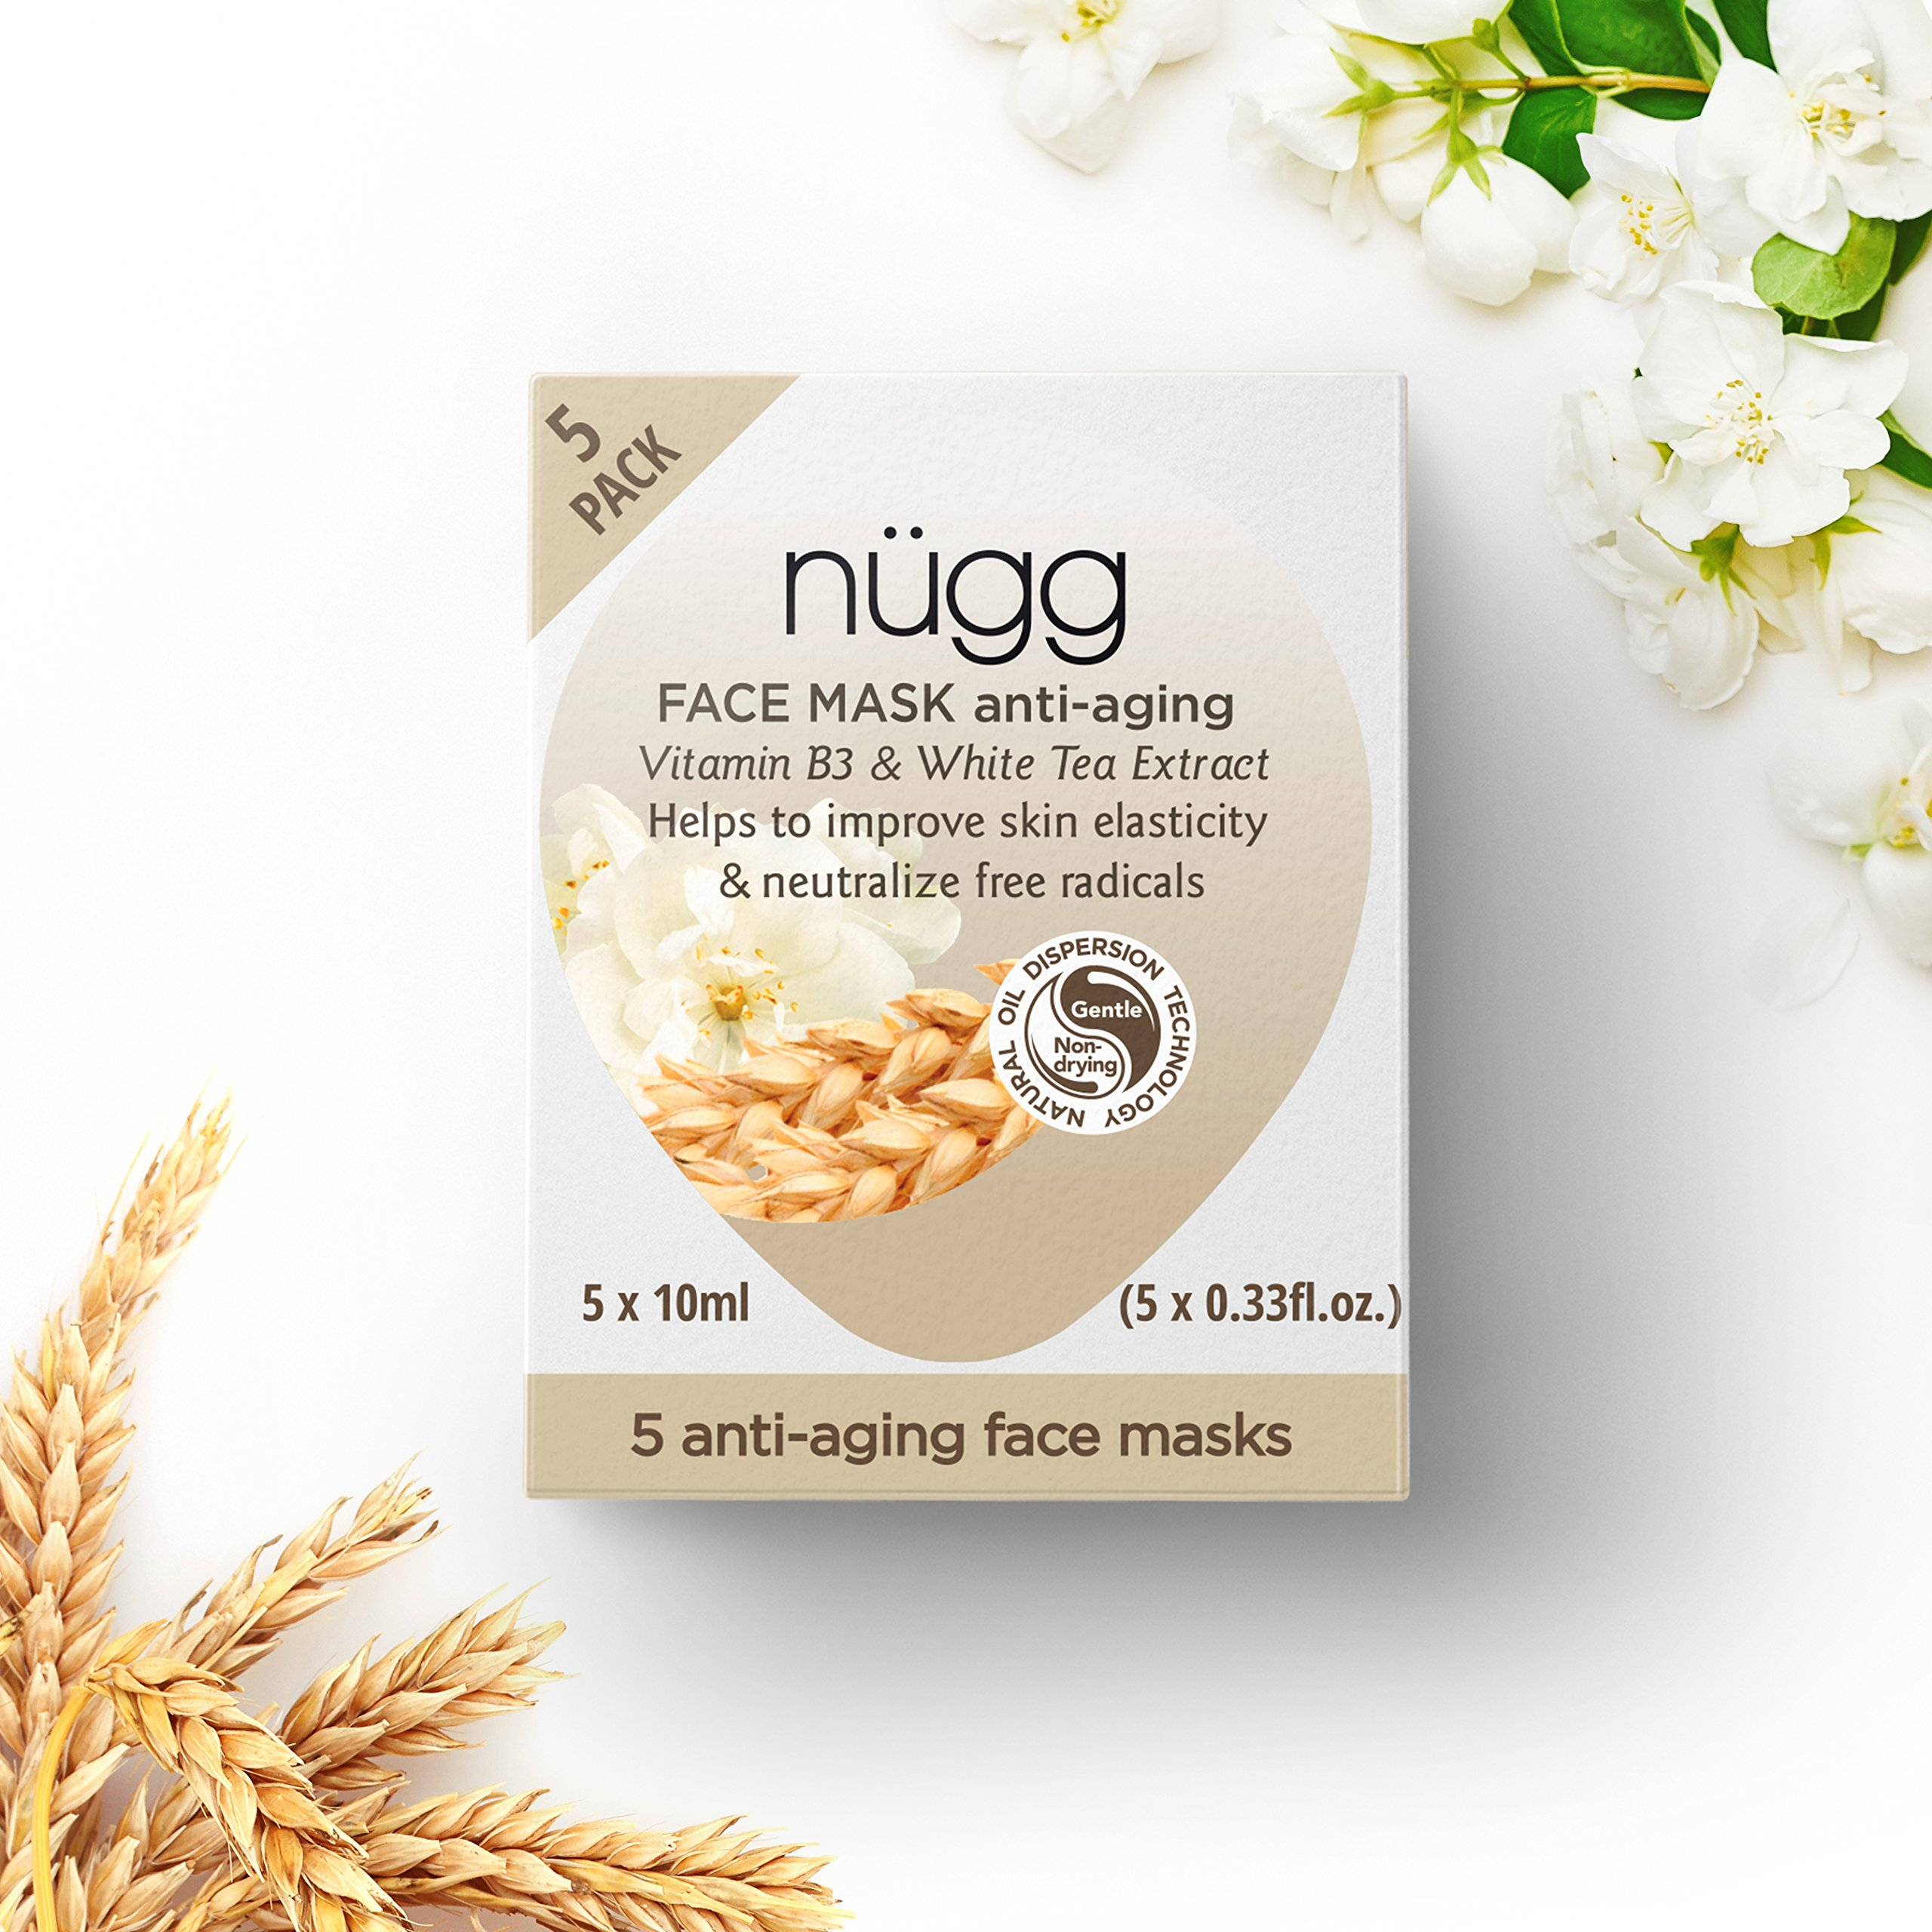 nügg Anti Aging Mask for Youthful Skin with Vitamin B3 and White Tea Extract; 97% Natural/Naturally Derived; 5 Pack of Single Use Face Mask Pods